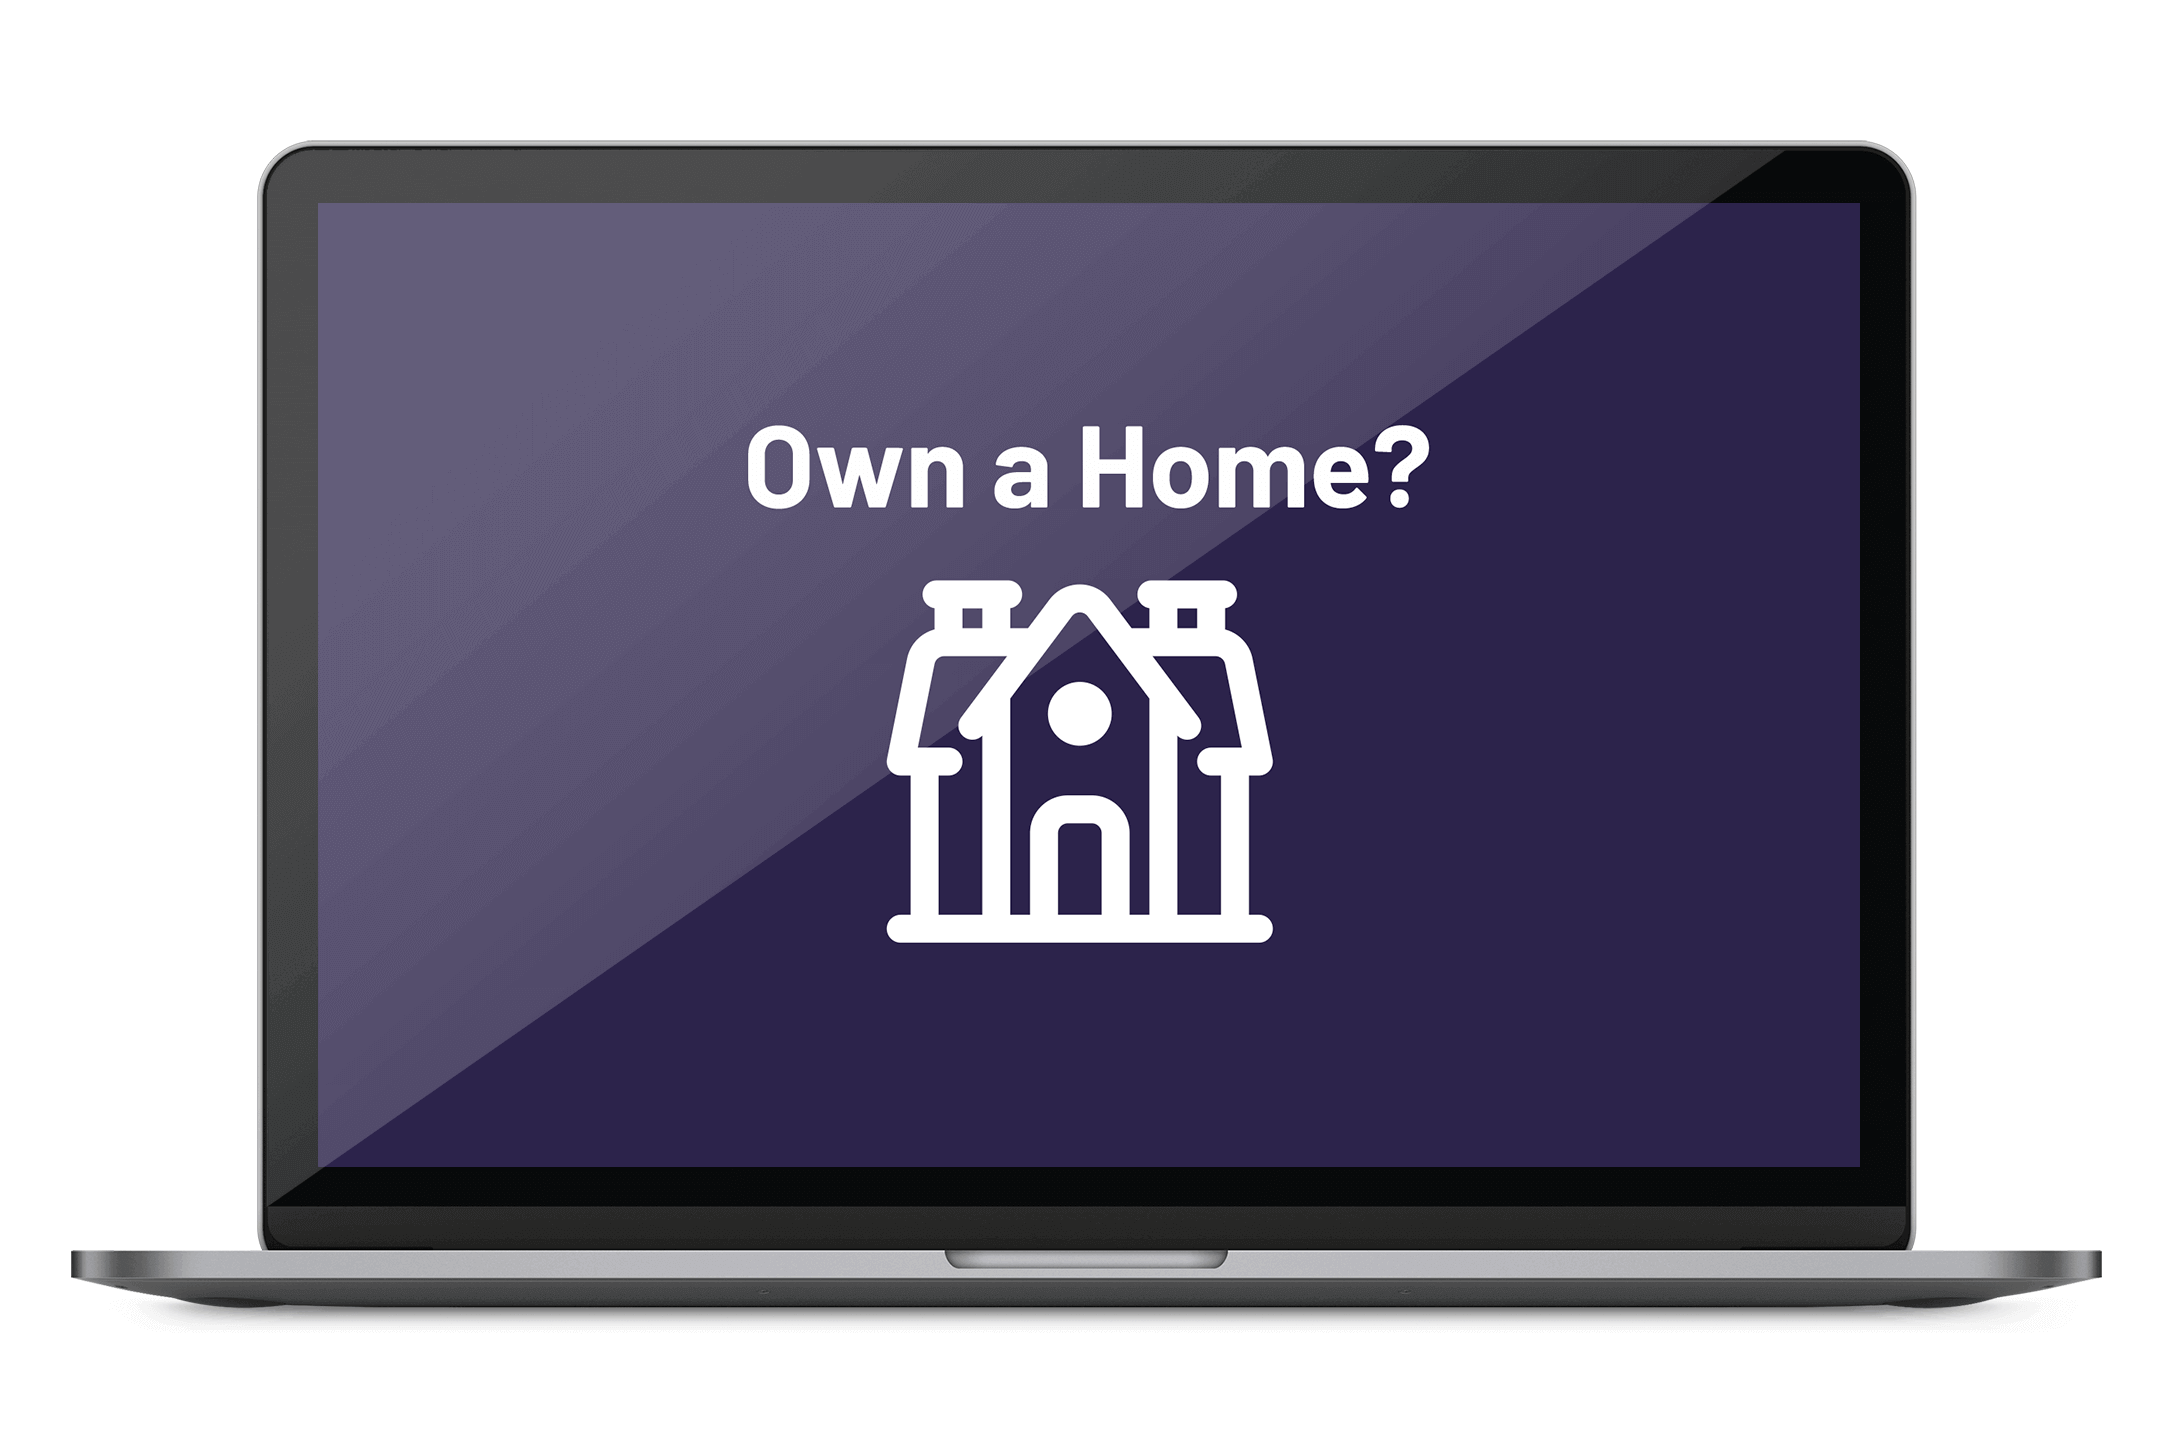 Laptop displaying a text 'Own a Home?'